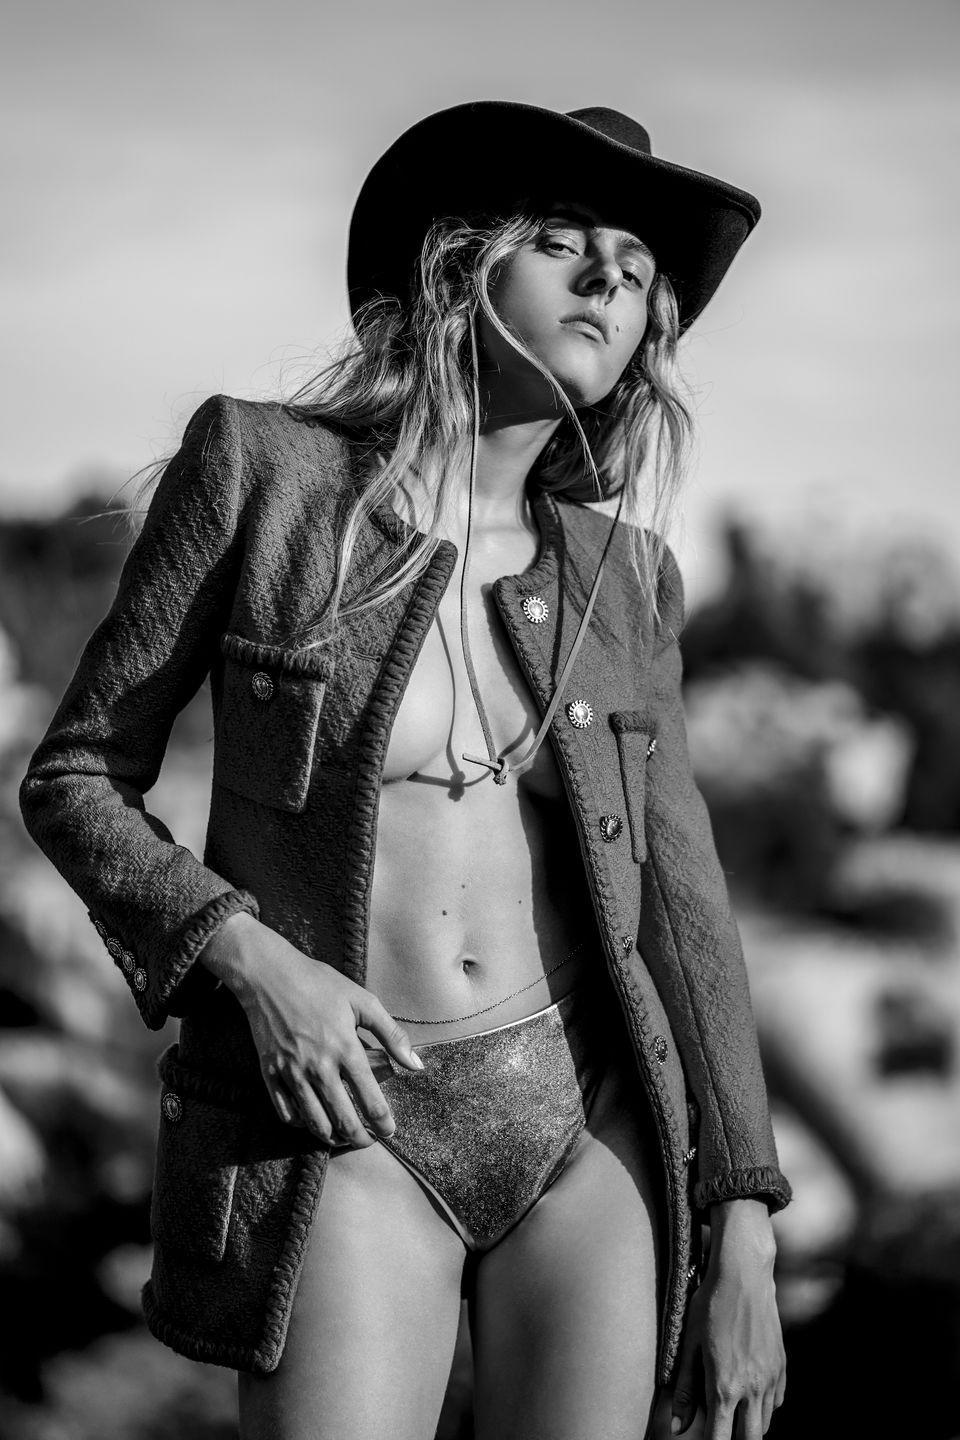 <p>Giacca in tweed di lana e slip metallizzato, <strong>Saint Laurent by Anthony Vaccarello</strong>, cappello western in feltro di lana <strong>Stetson</strong> (129 euro), catenina intorno alla vita vintage.</p>